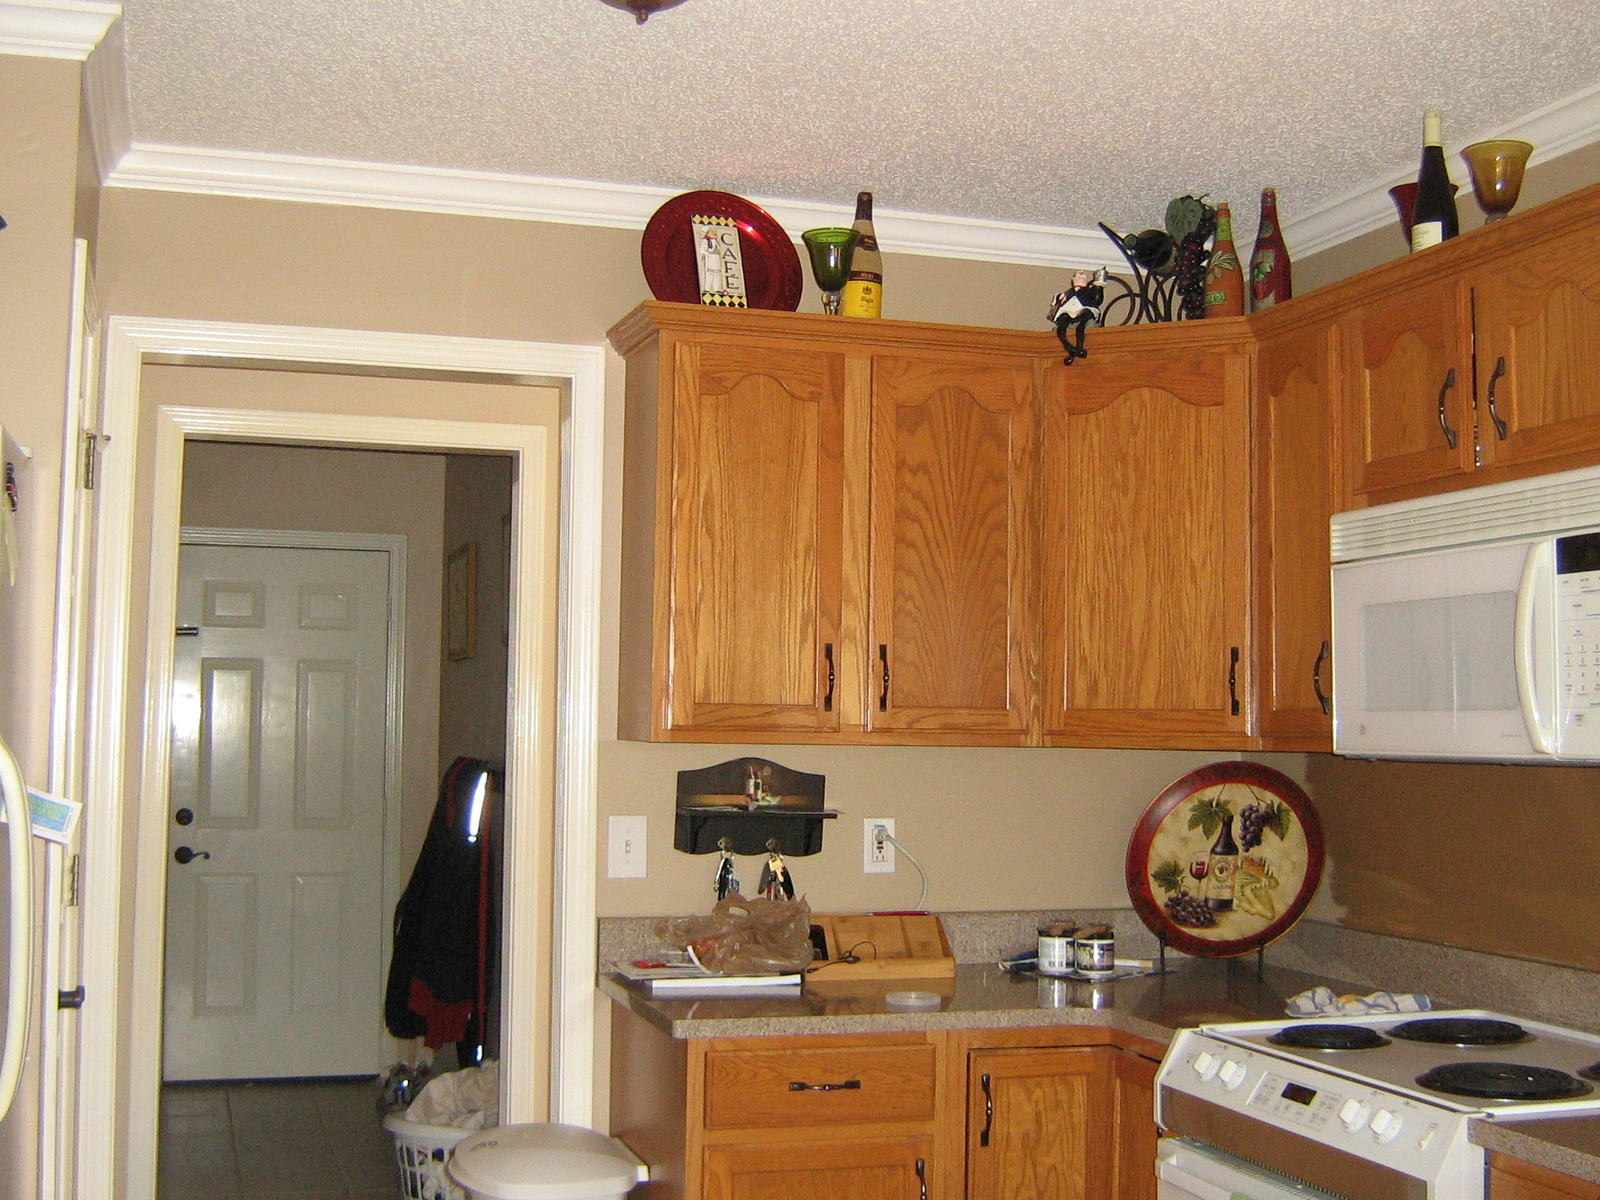 Best ideas about Paint Colors For Kitchen . Save or Pin PLEASE HELP choosing paint color for kitchen cabinets Now.